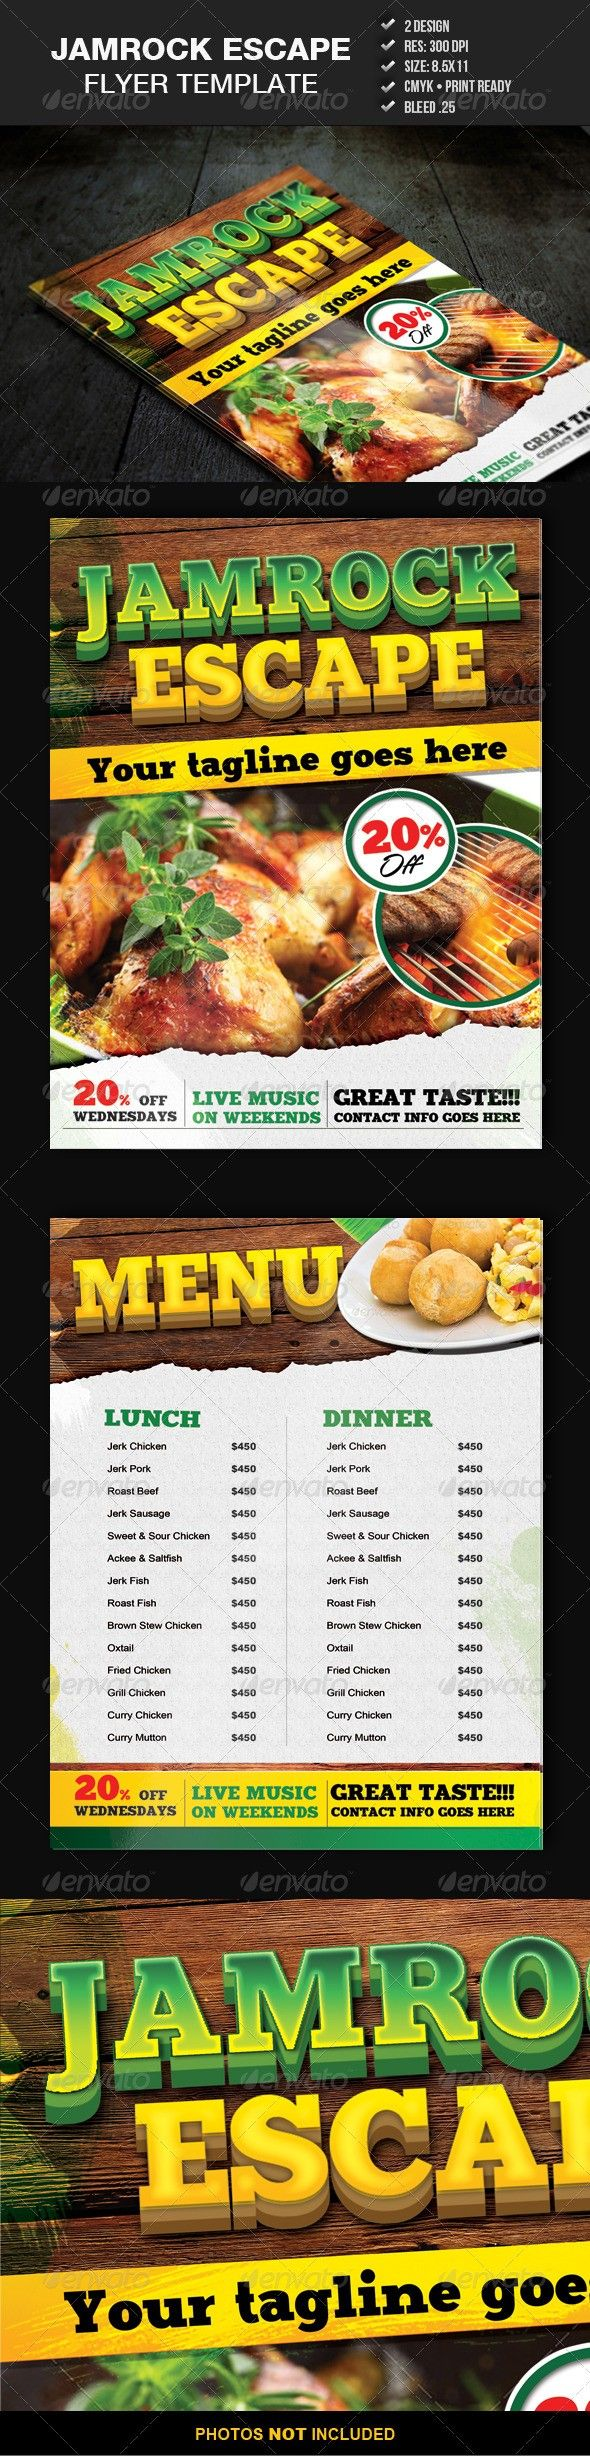 pin by gregory payton on flyer design pinterest flyer template